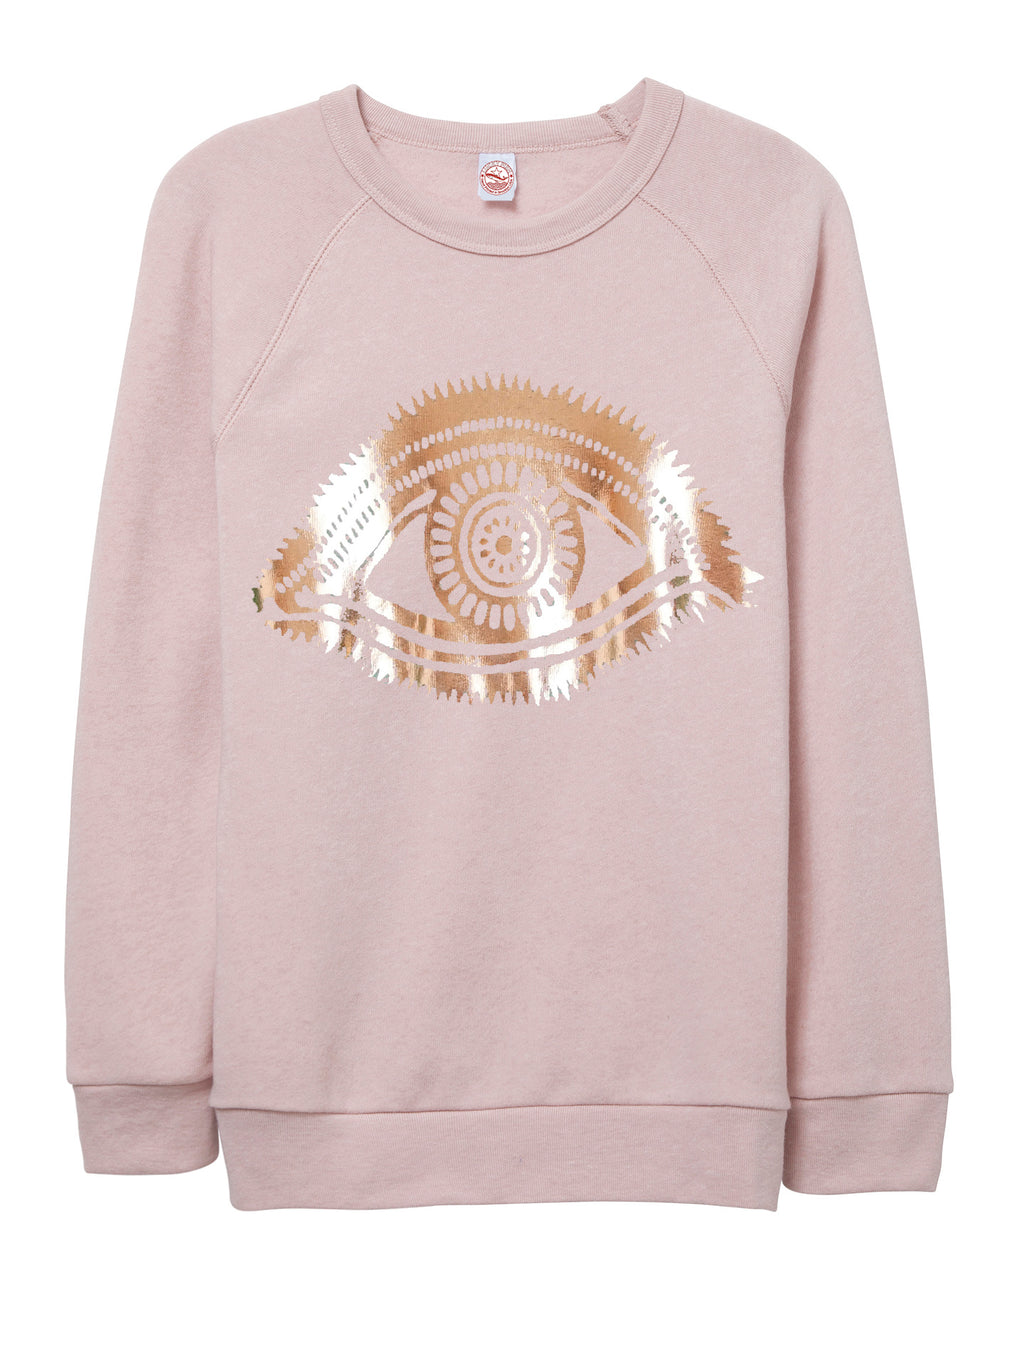 I & I ROSE YOUTH SWEATSHIRT